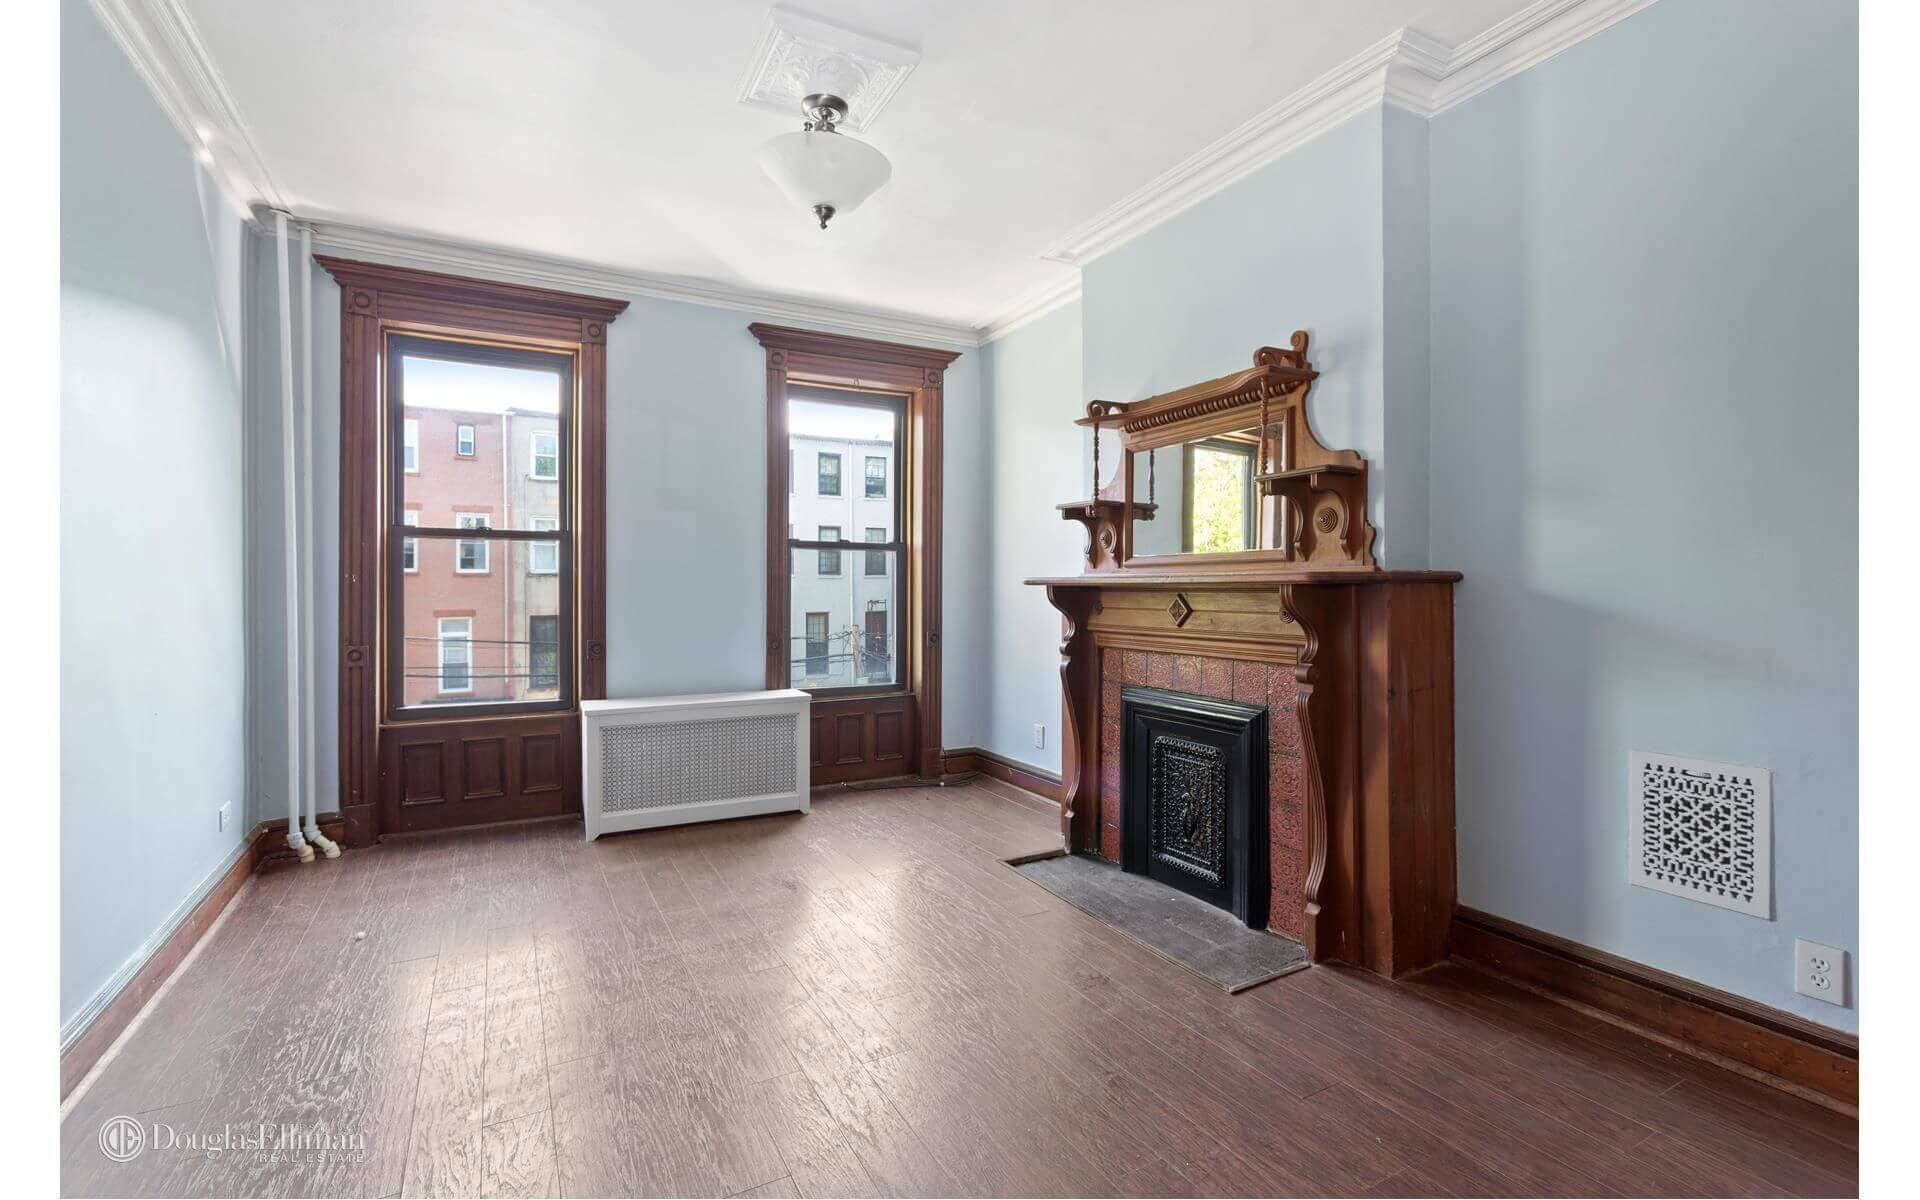 brooklyn-homes-for-sale-bedford-stuyvesant-160-madconough-street-5